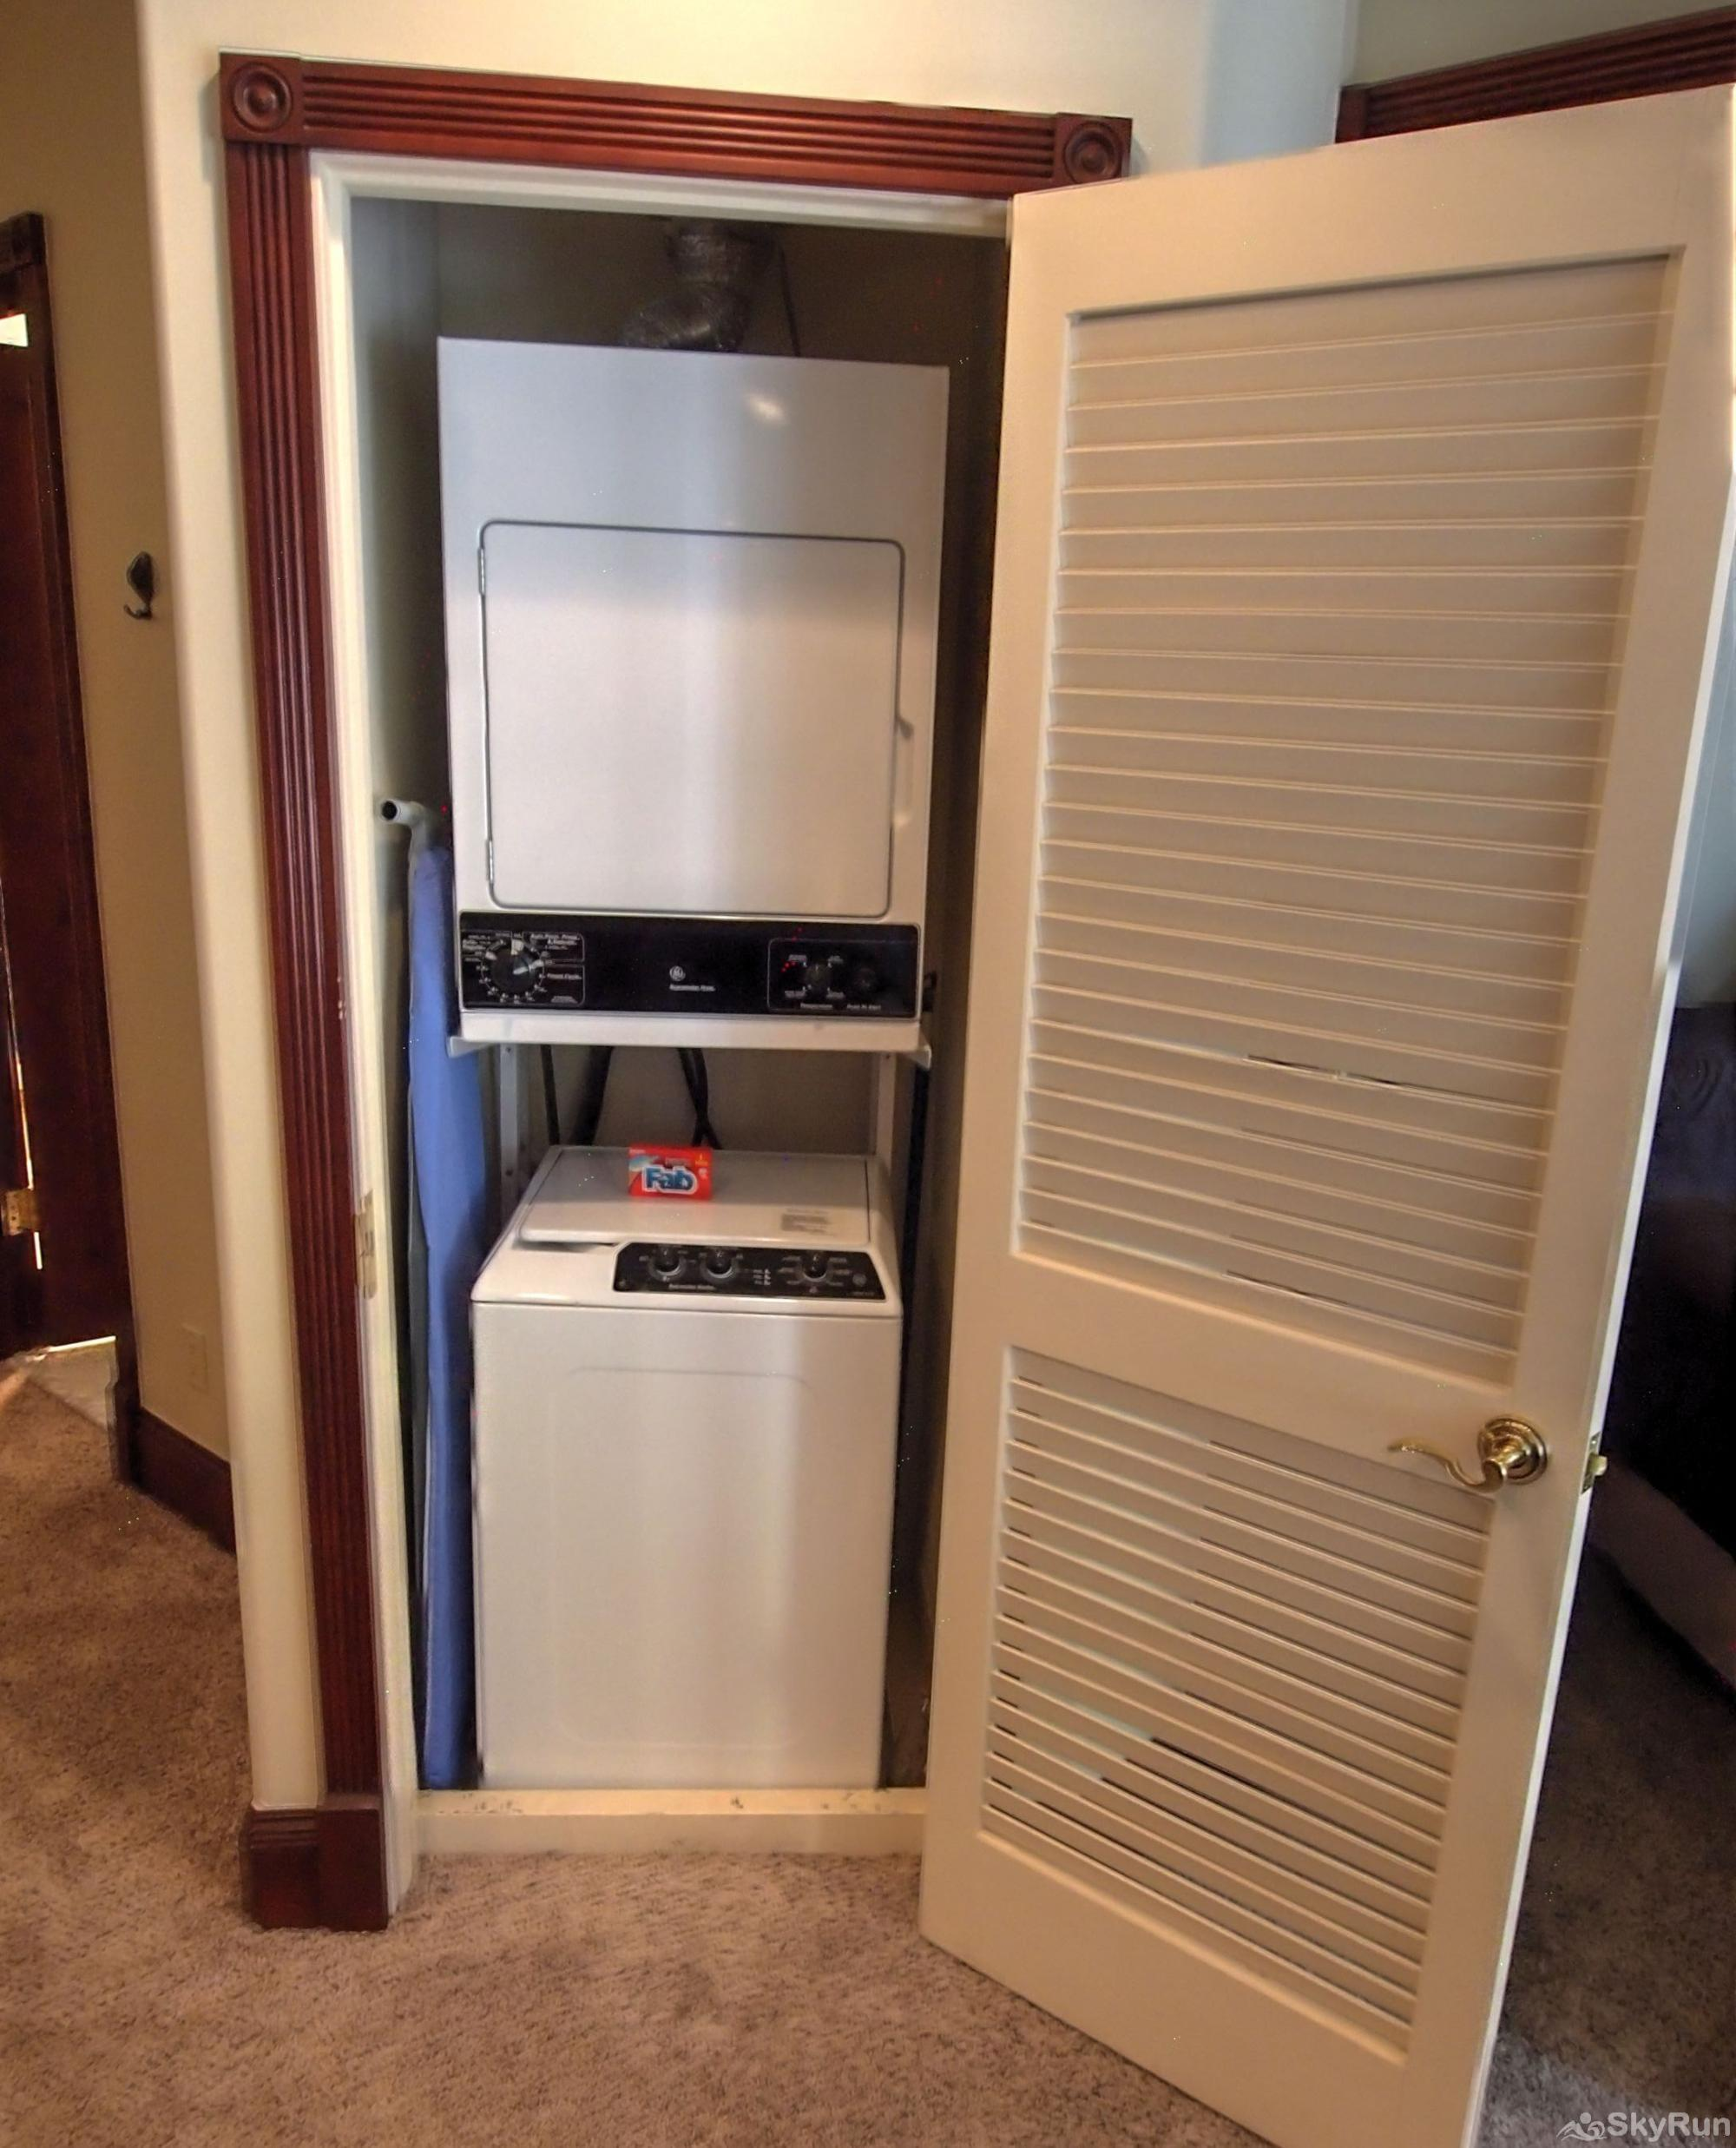 Ballard House 207A 2BR Washer / Dryer